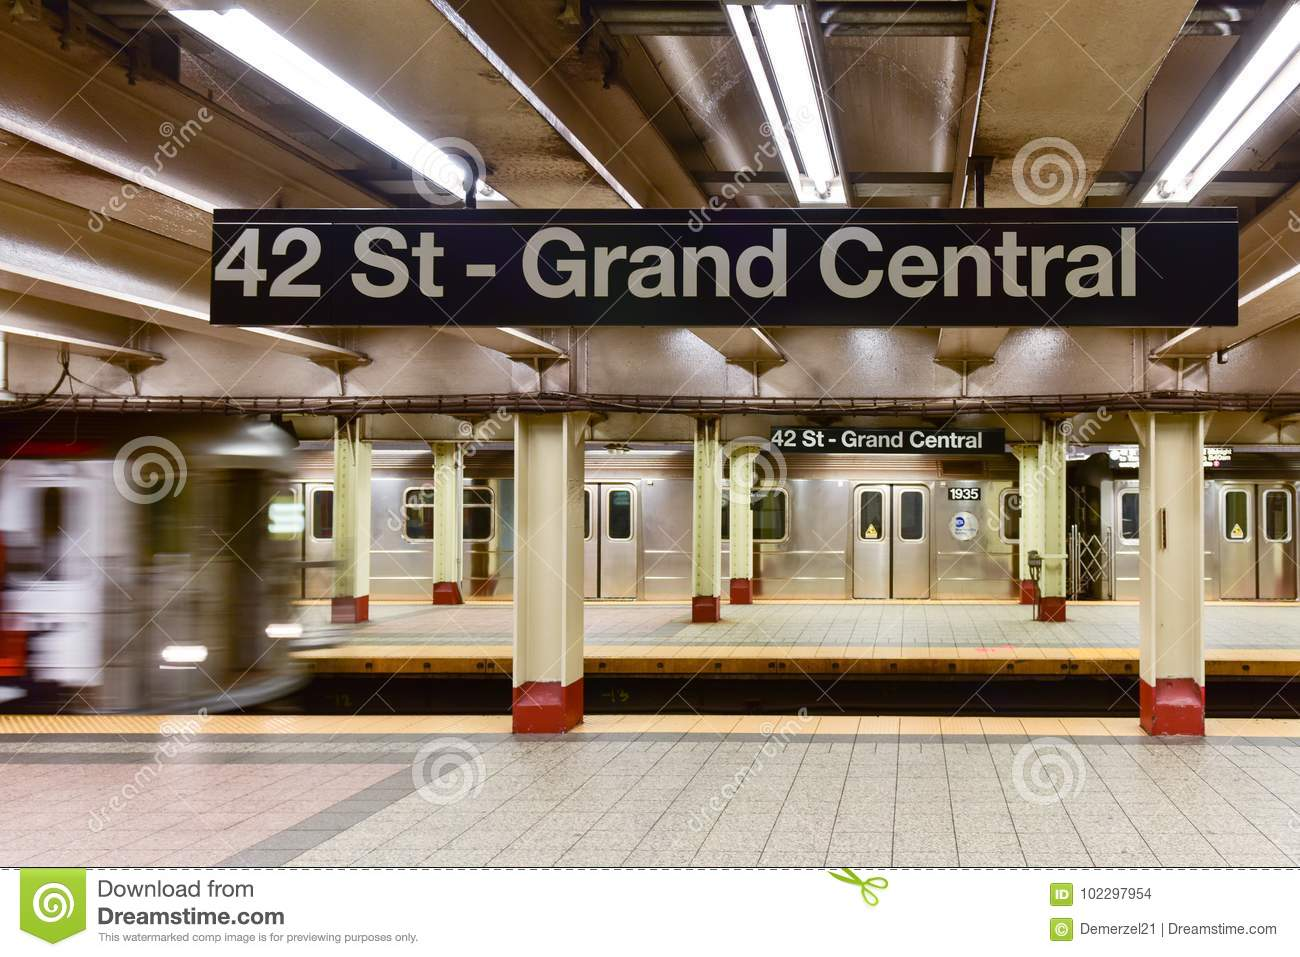 42 St - Grand Central Subway Station